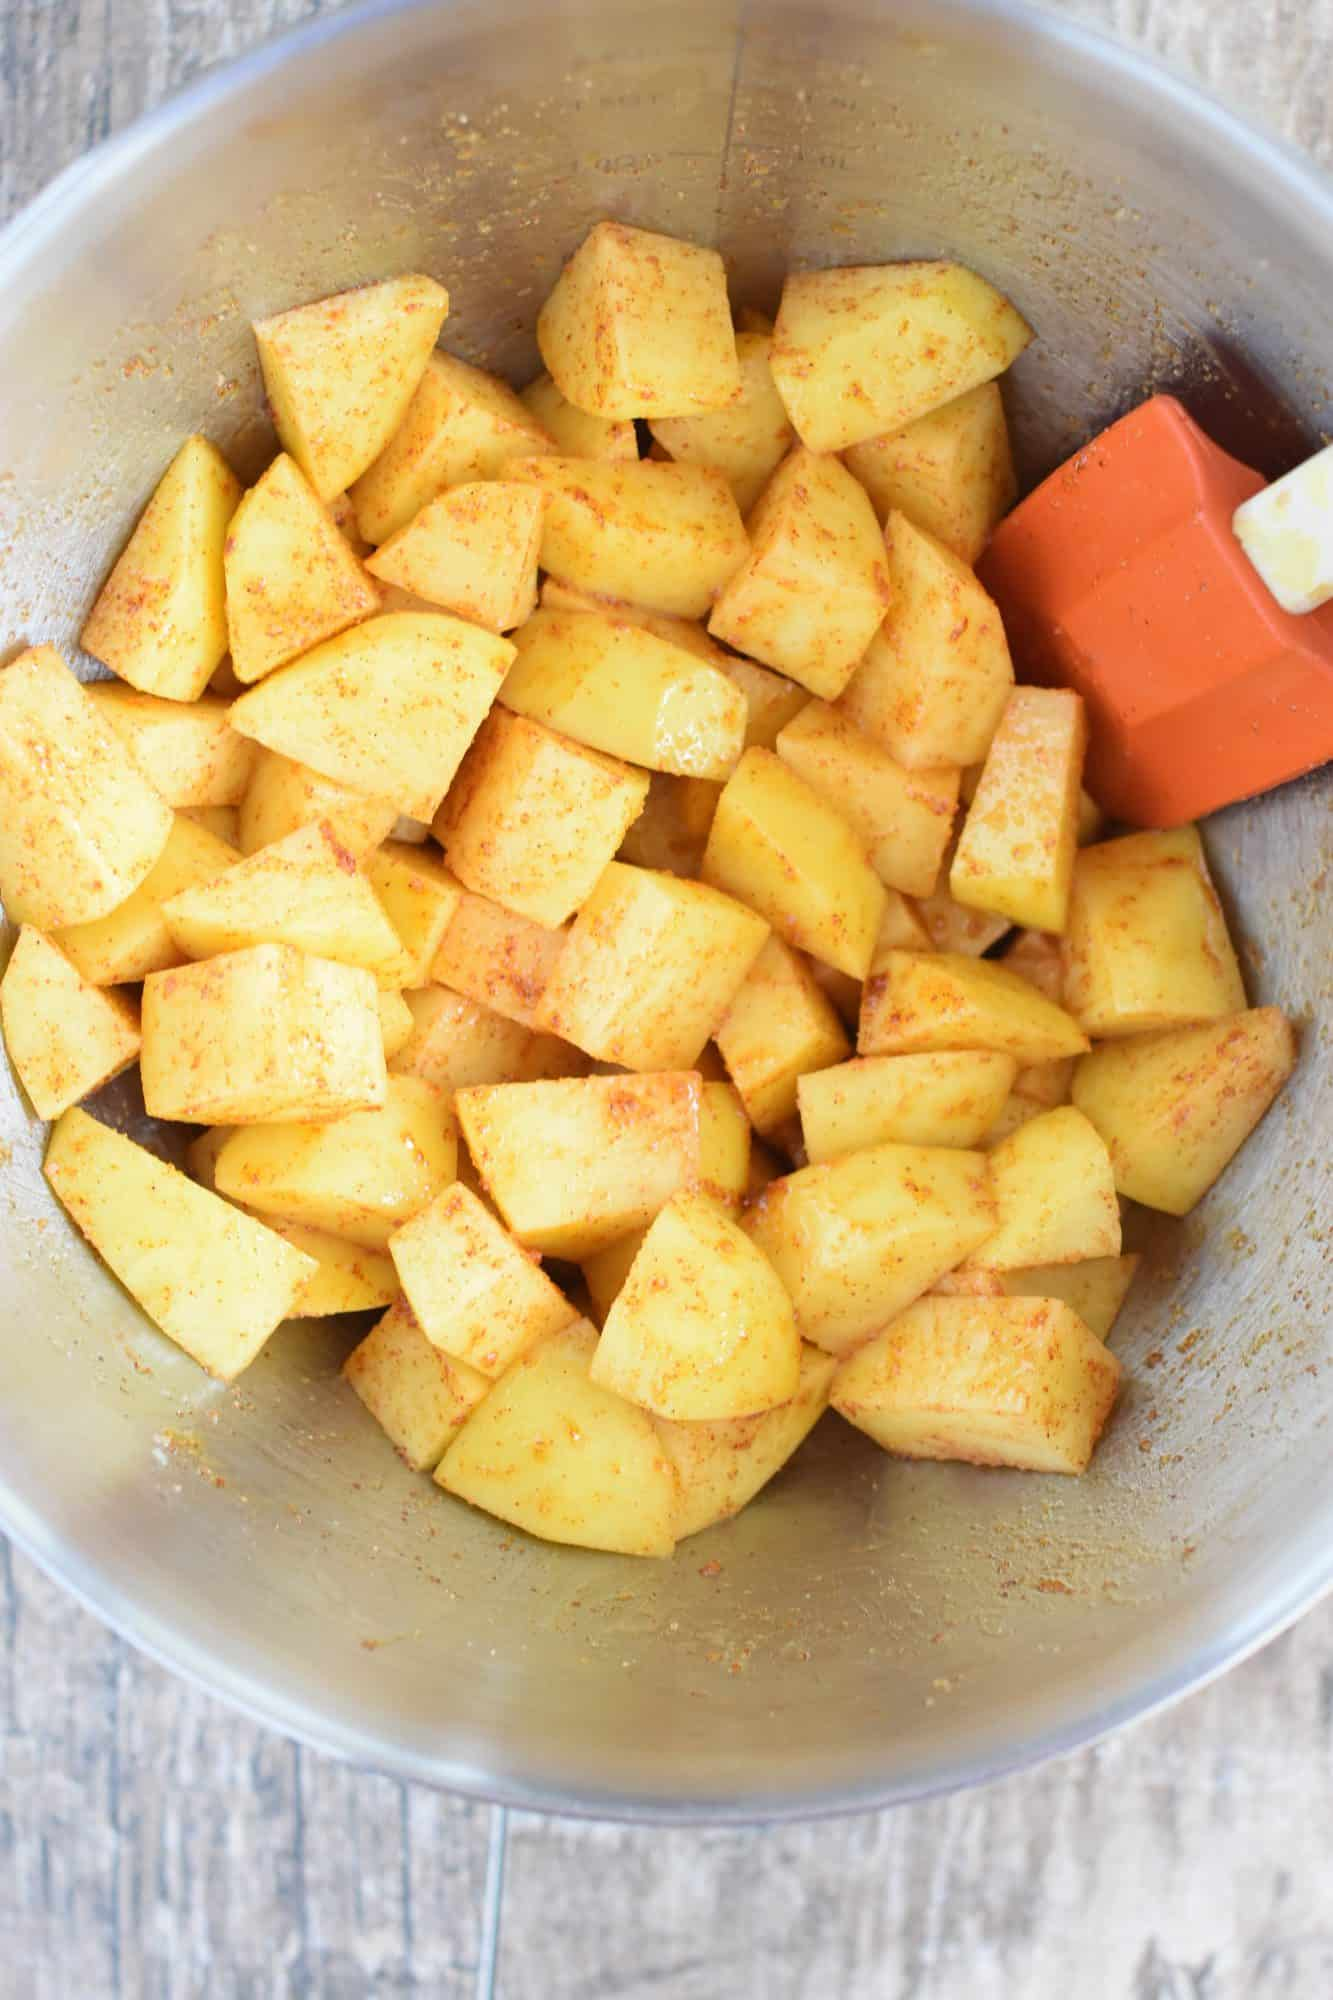 olive oil, paprika, onion powder and salt mixed into the potatoes